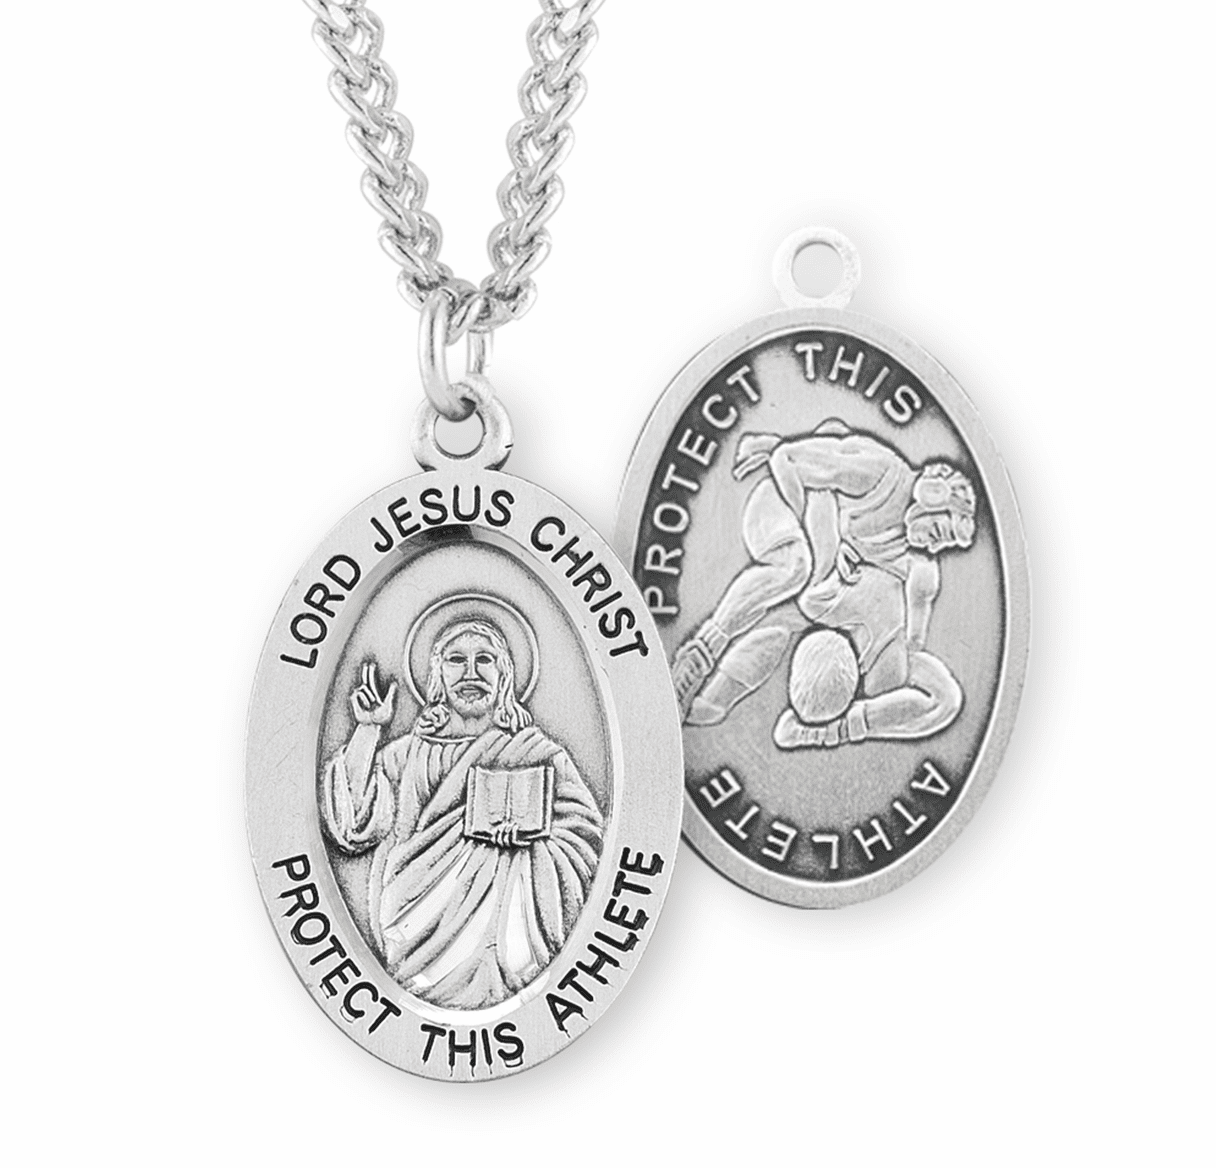 HMH Religious Jesus Christ Wrestling Oval Sterling Silver Sports Necklace